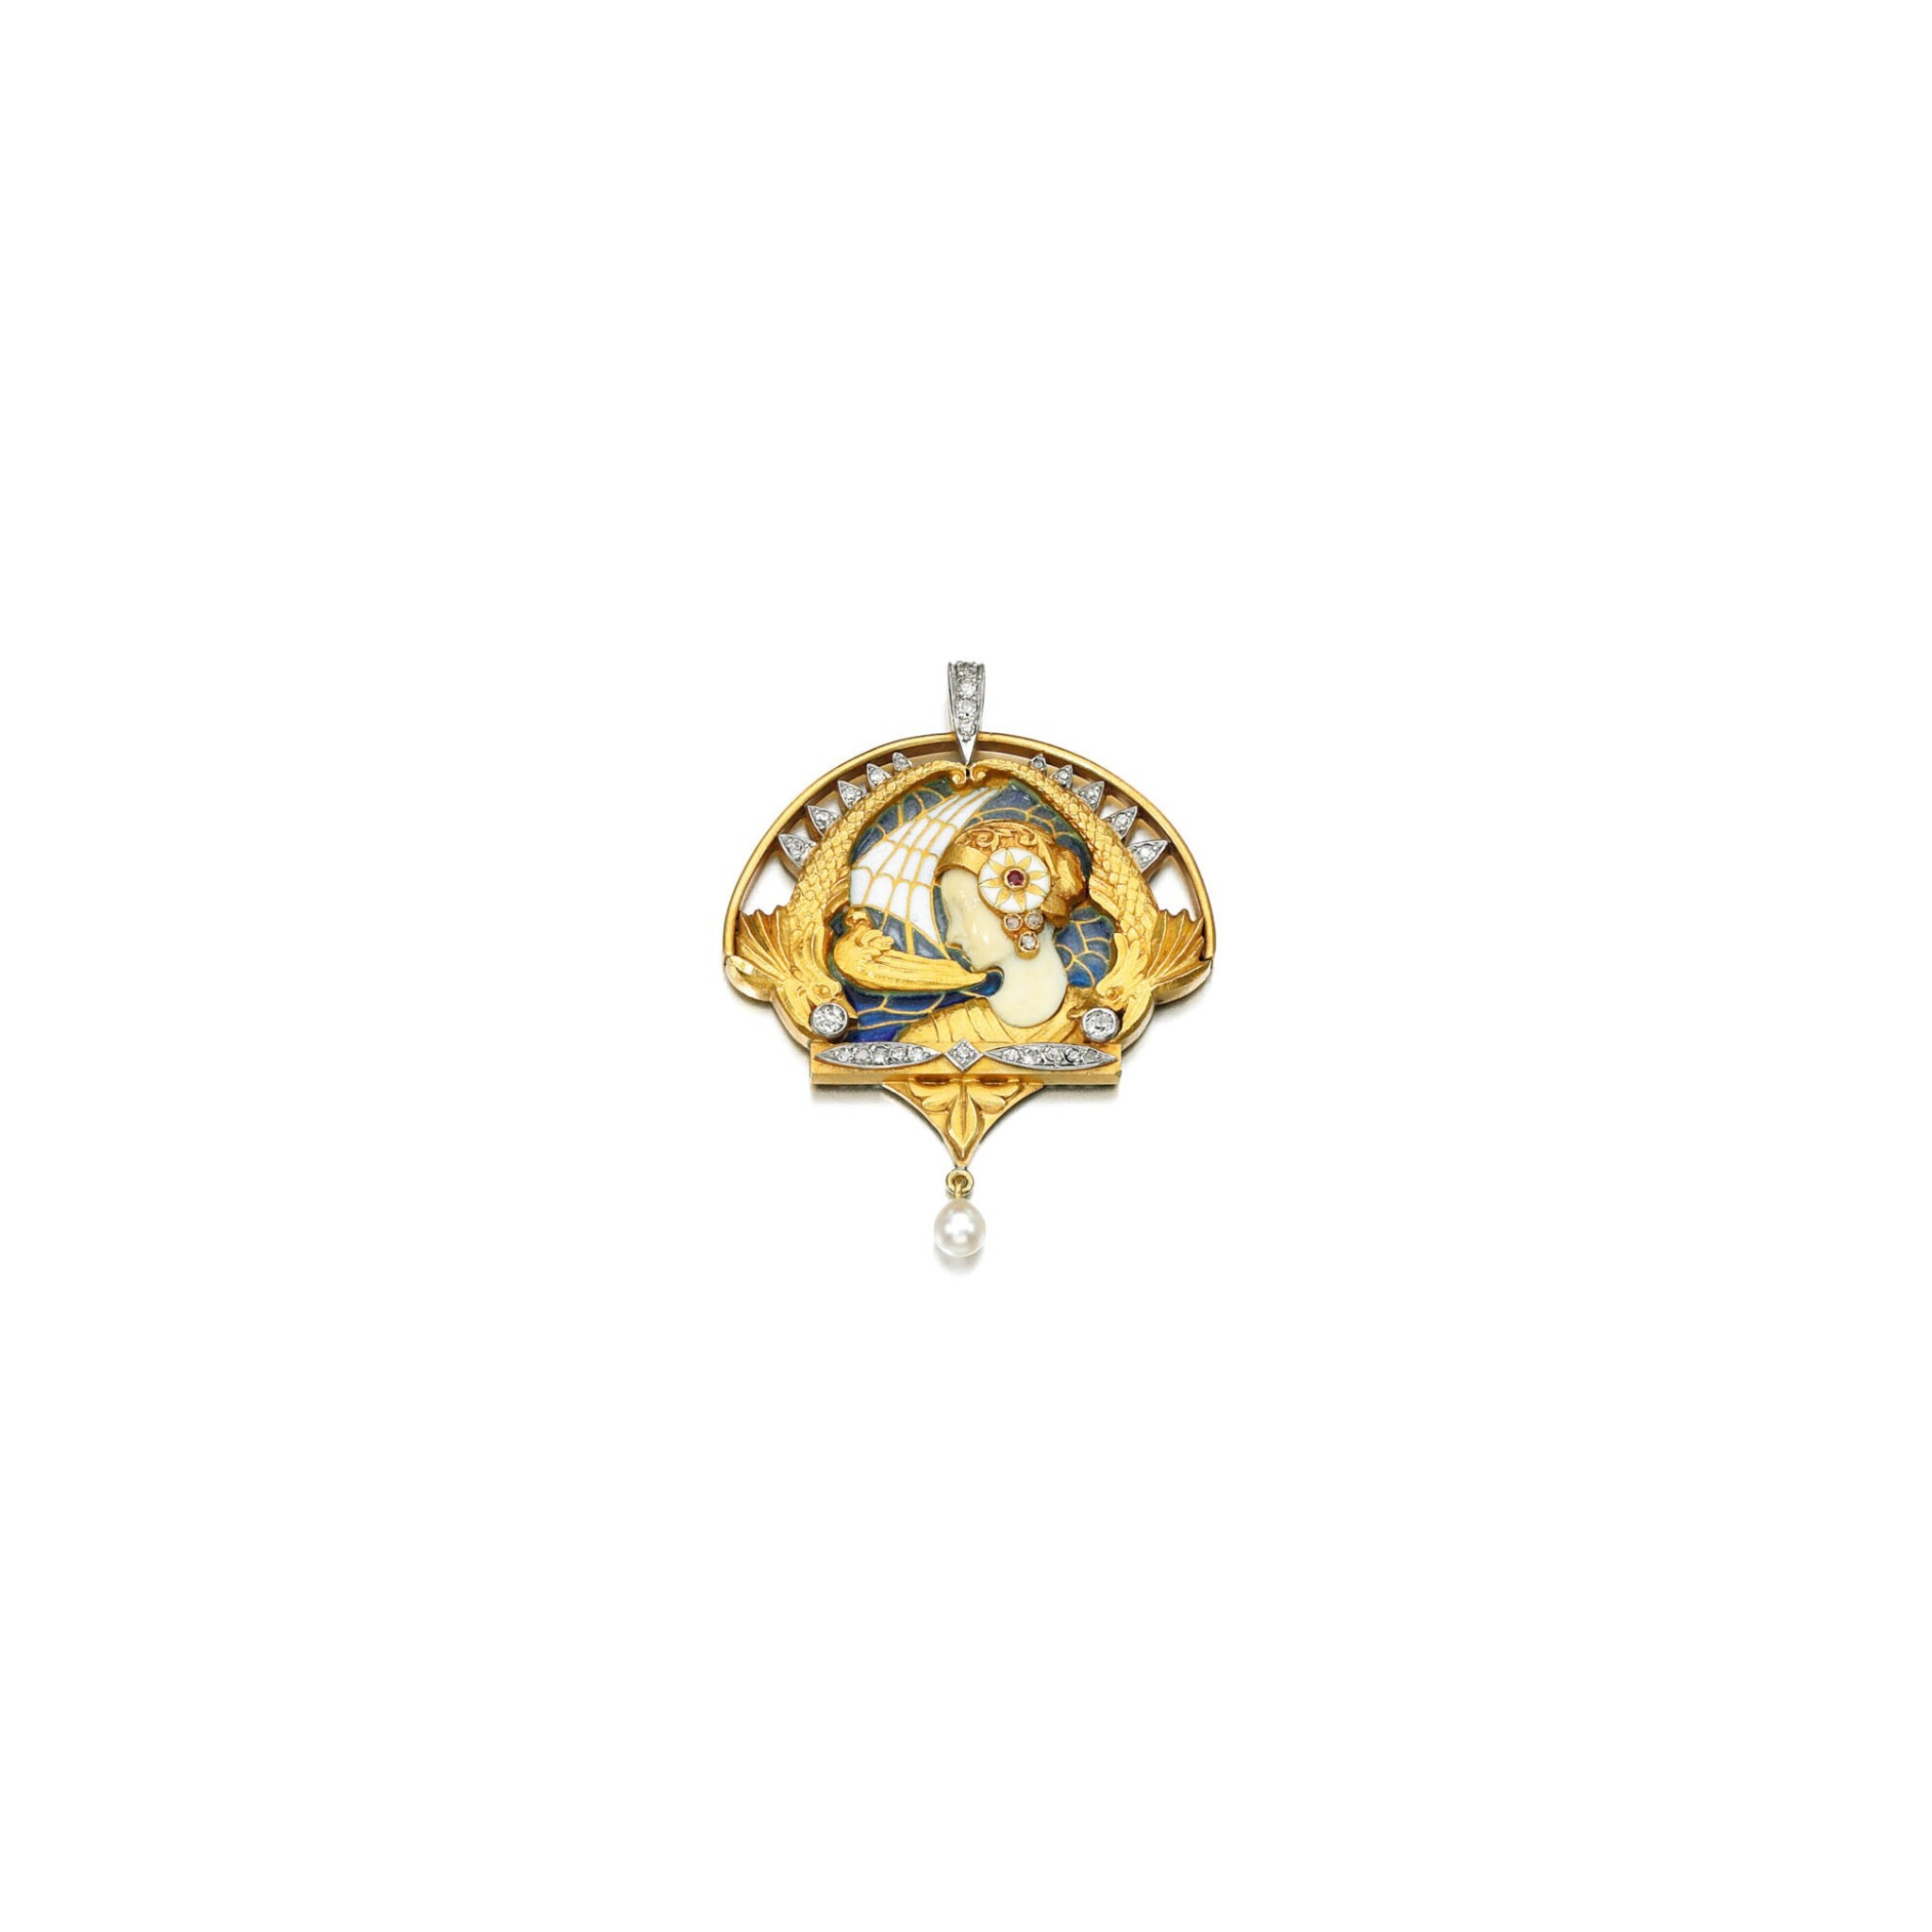 View full screen - View 1 of Lot 223. IVORY, ENAMEL AND DIAMOND PENDANT, MASRIERA Y CARRERA, 1920S.